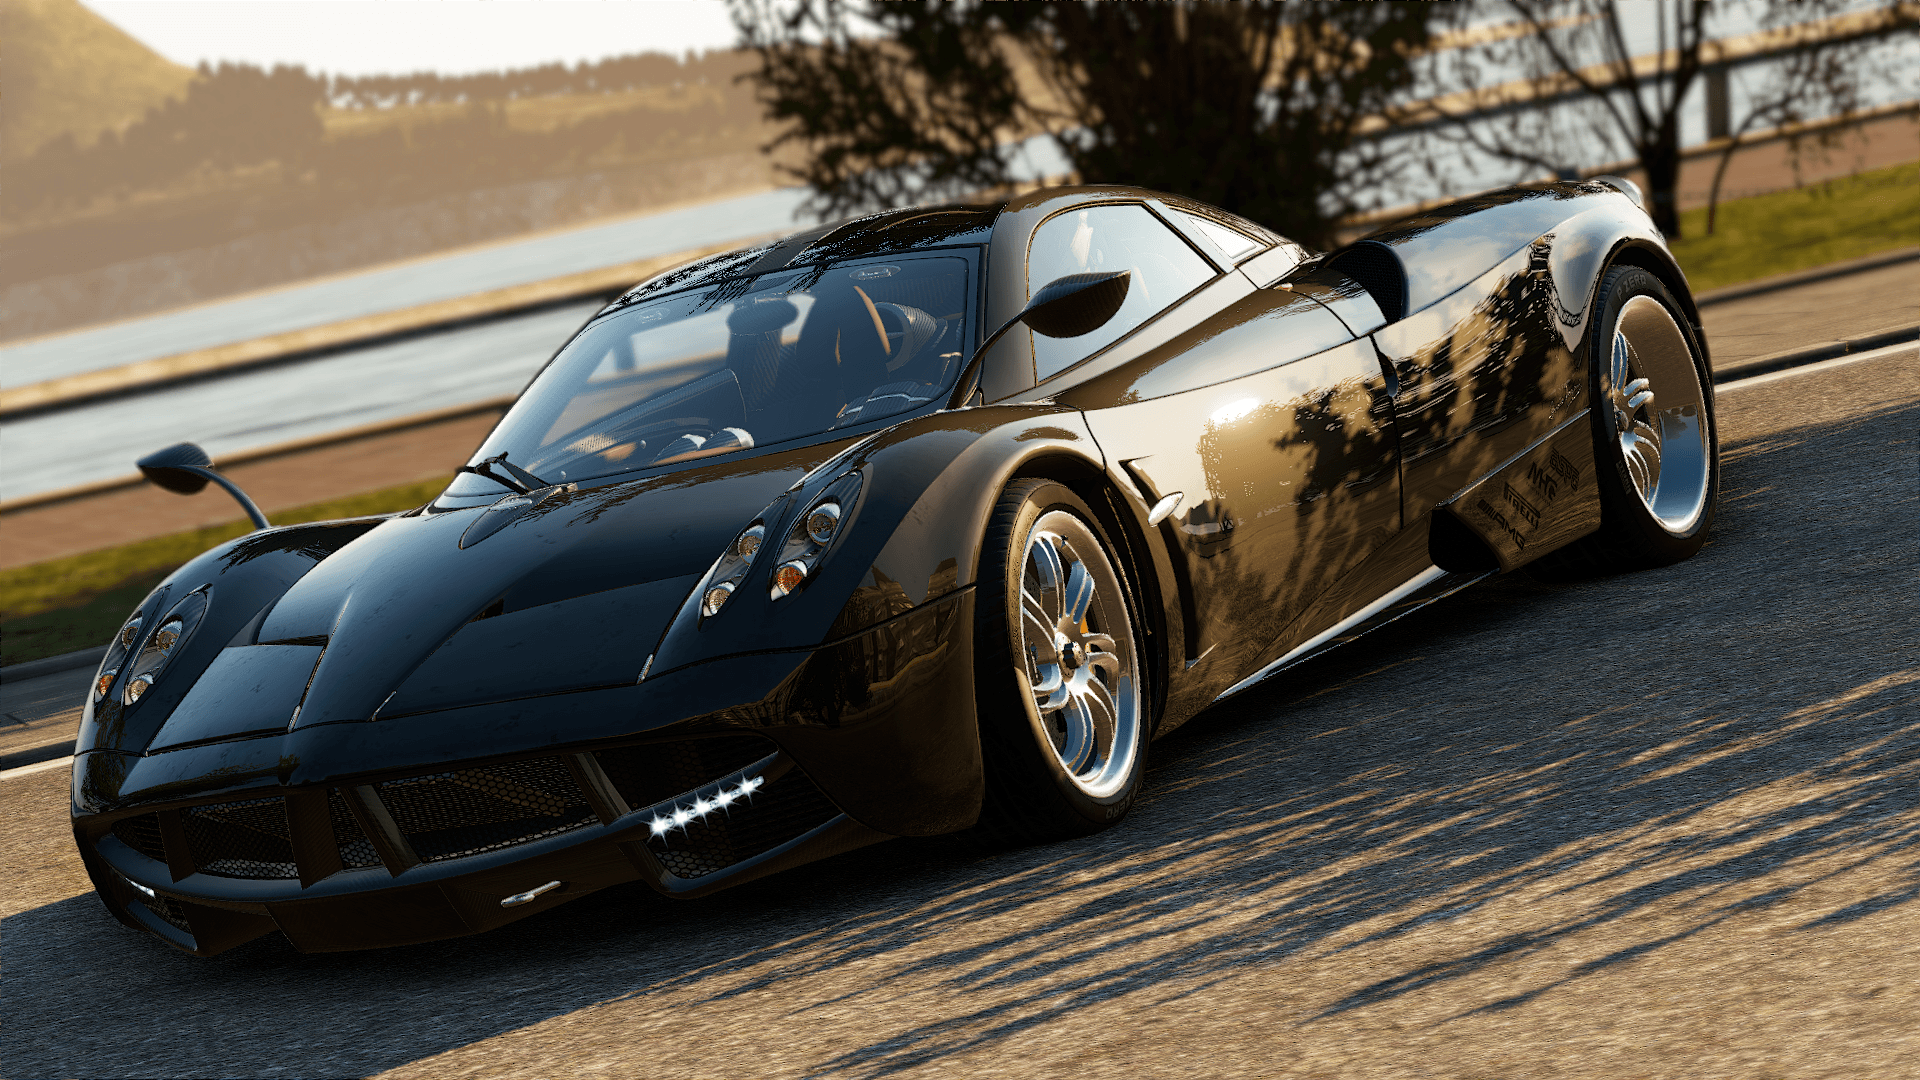 Project CARS image #6